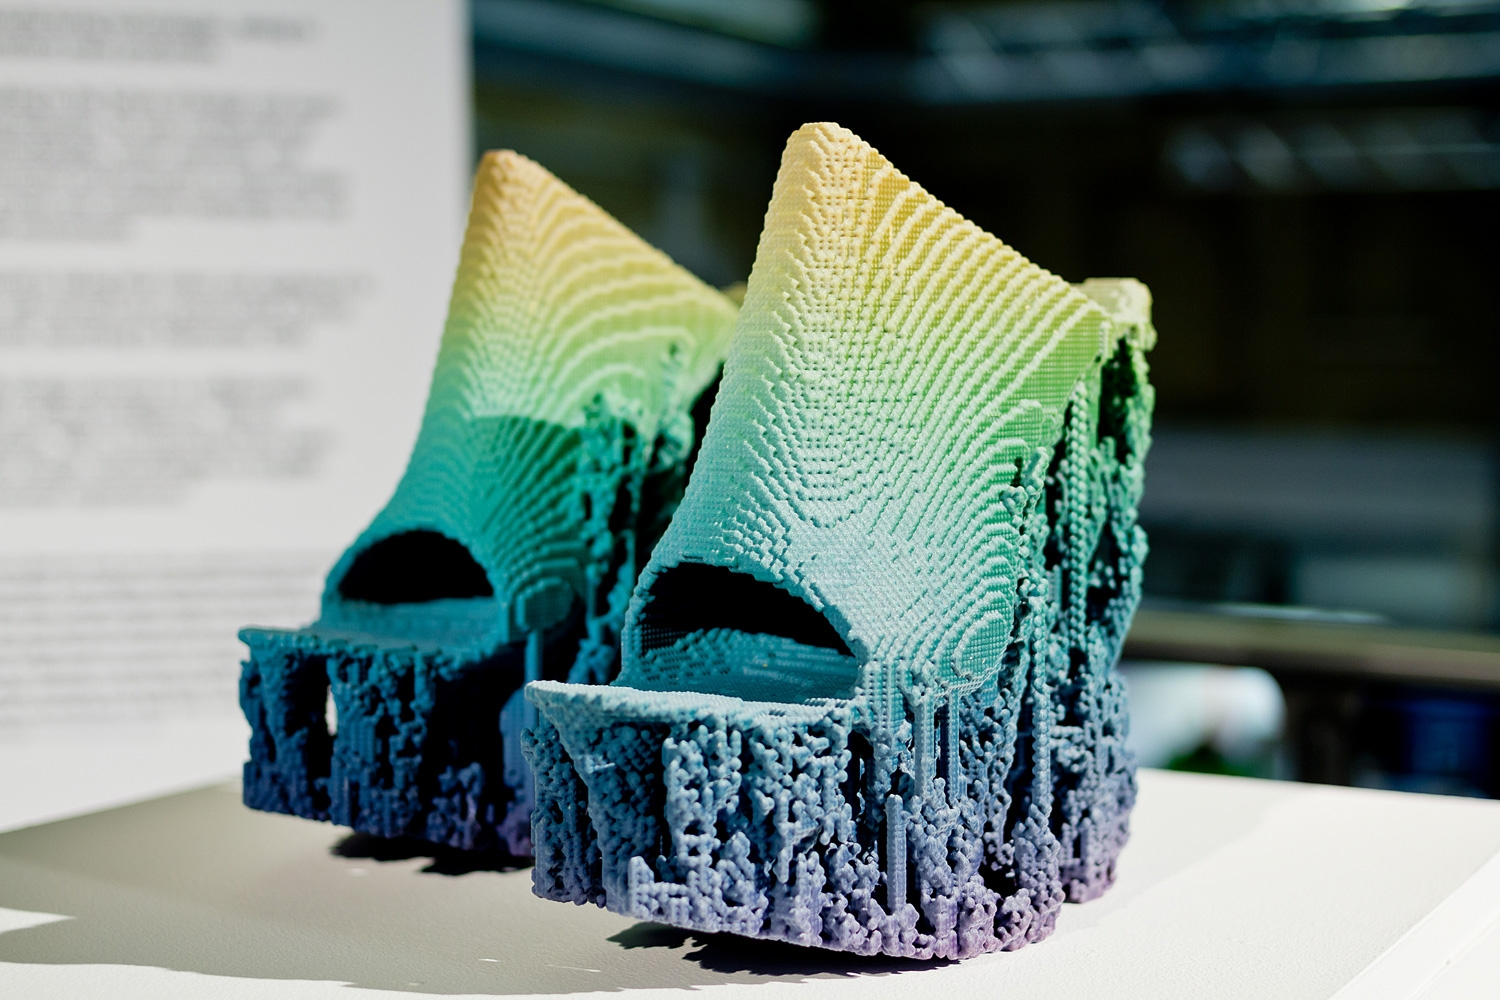 D Printing Exhibition Uk : D printing hottest trends new tech from the